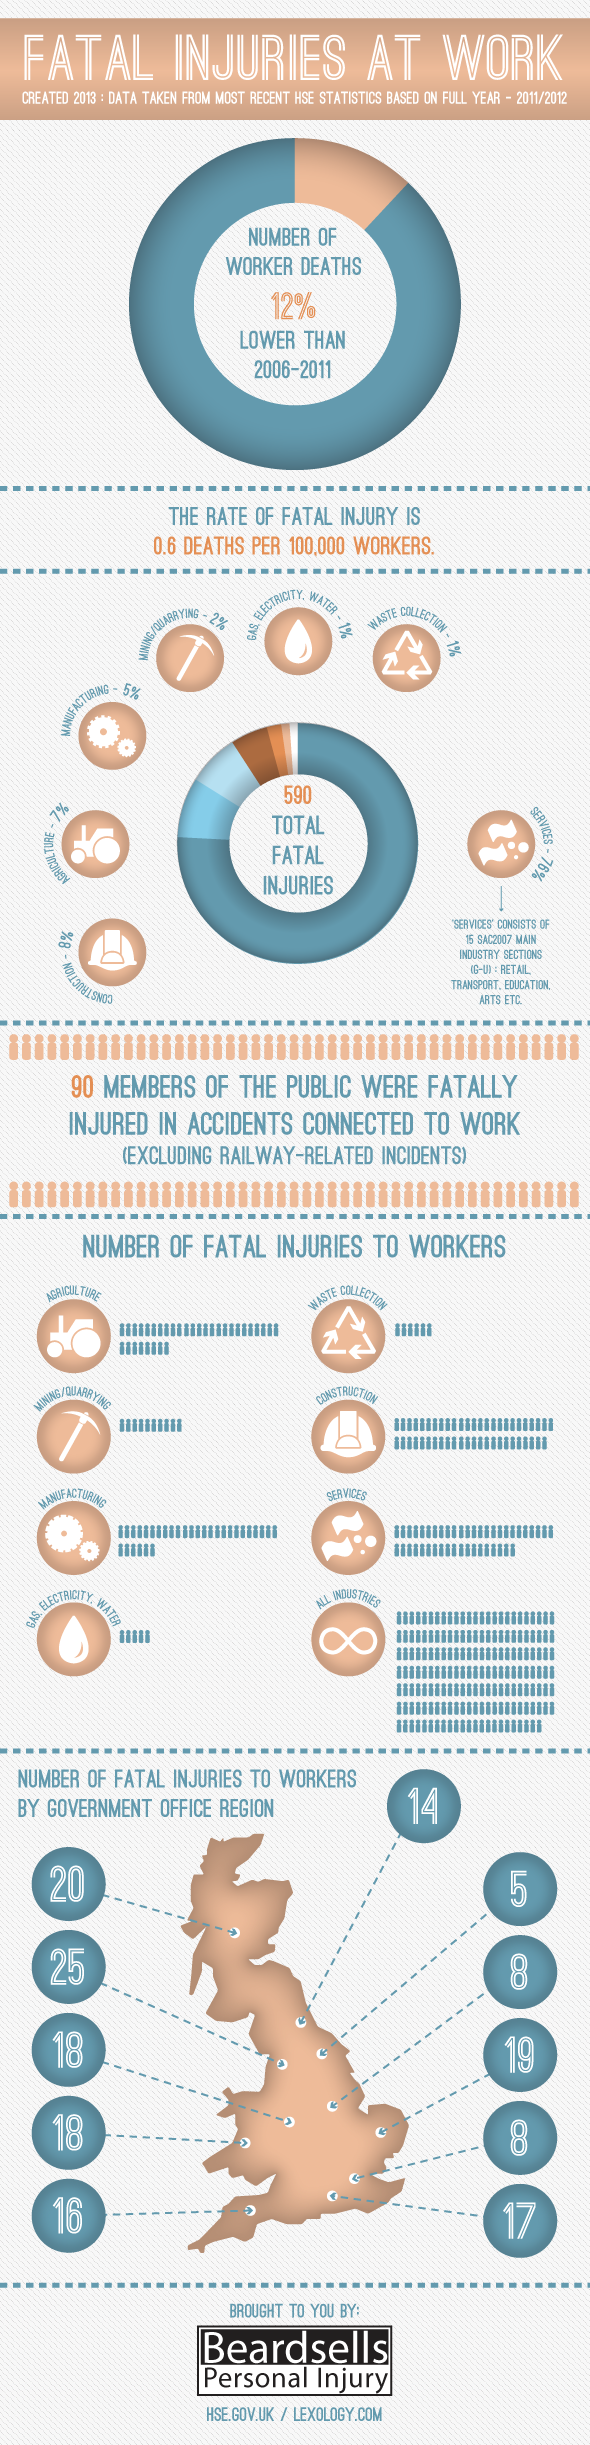 Fatal Injuries At Work (BeardsellsPersonalInjury.co.uk)